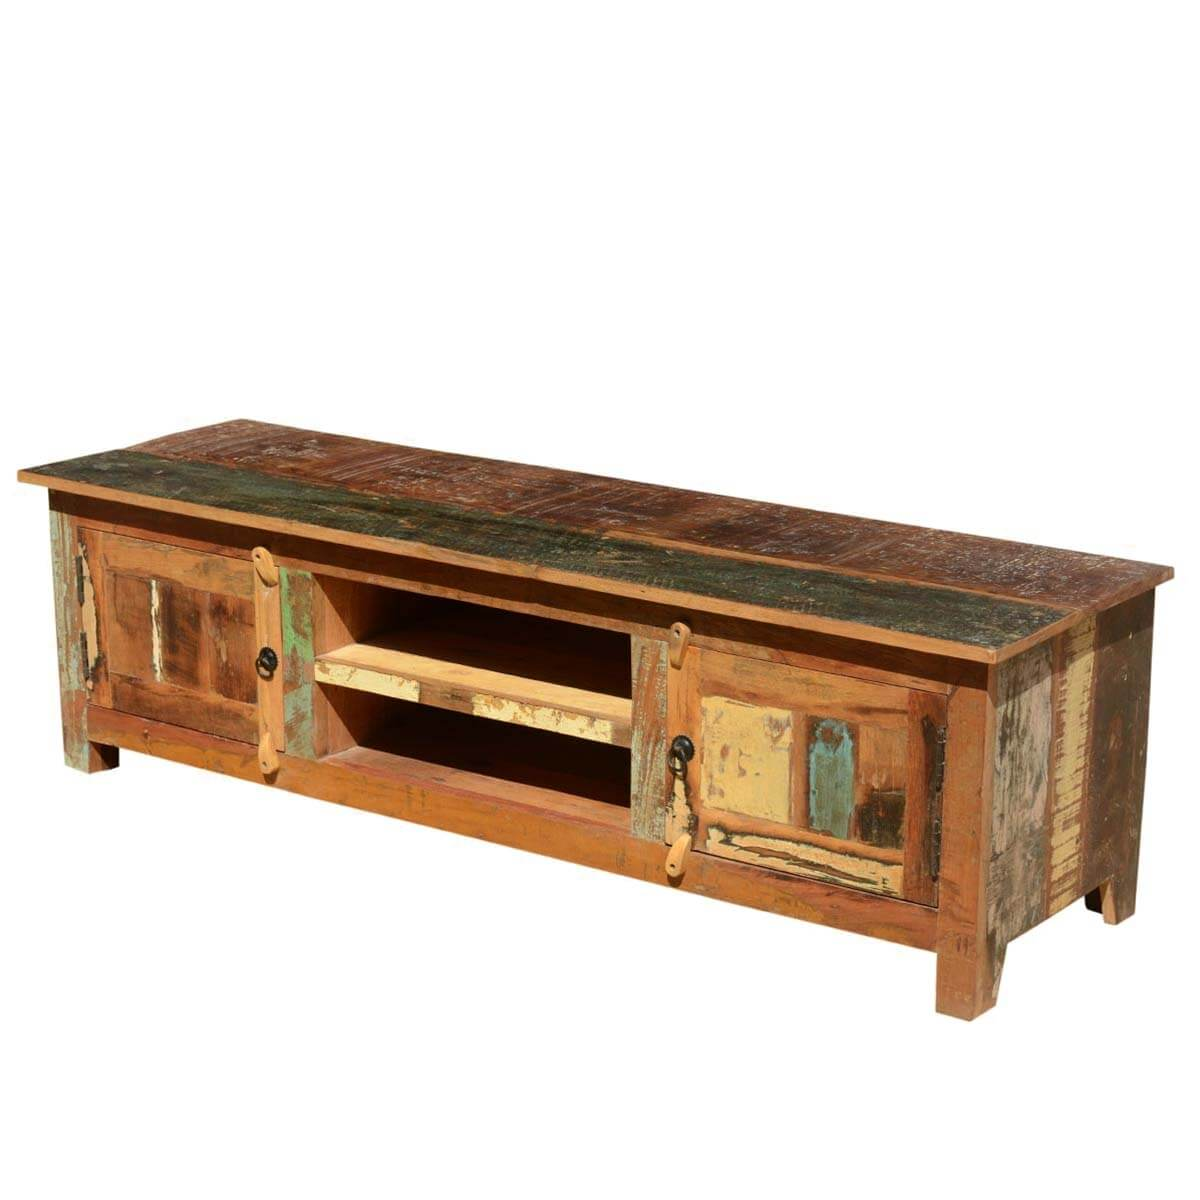 Distressed Reclaimed Wood 60 Rustic Media Console